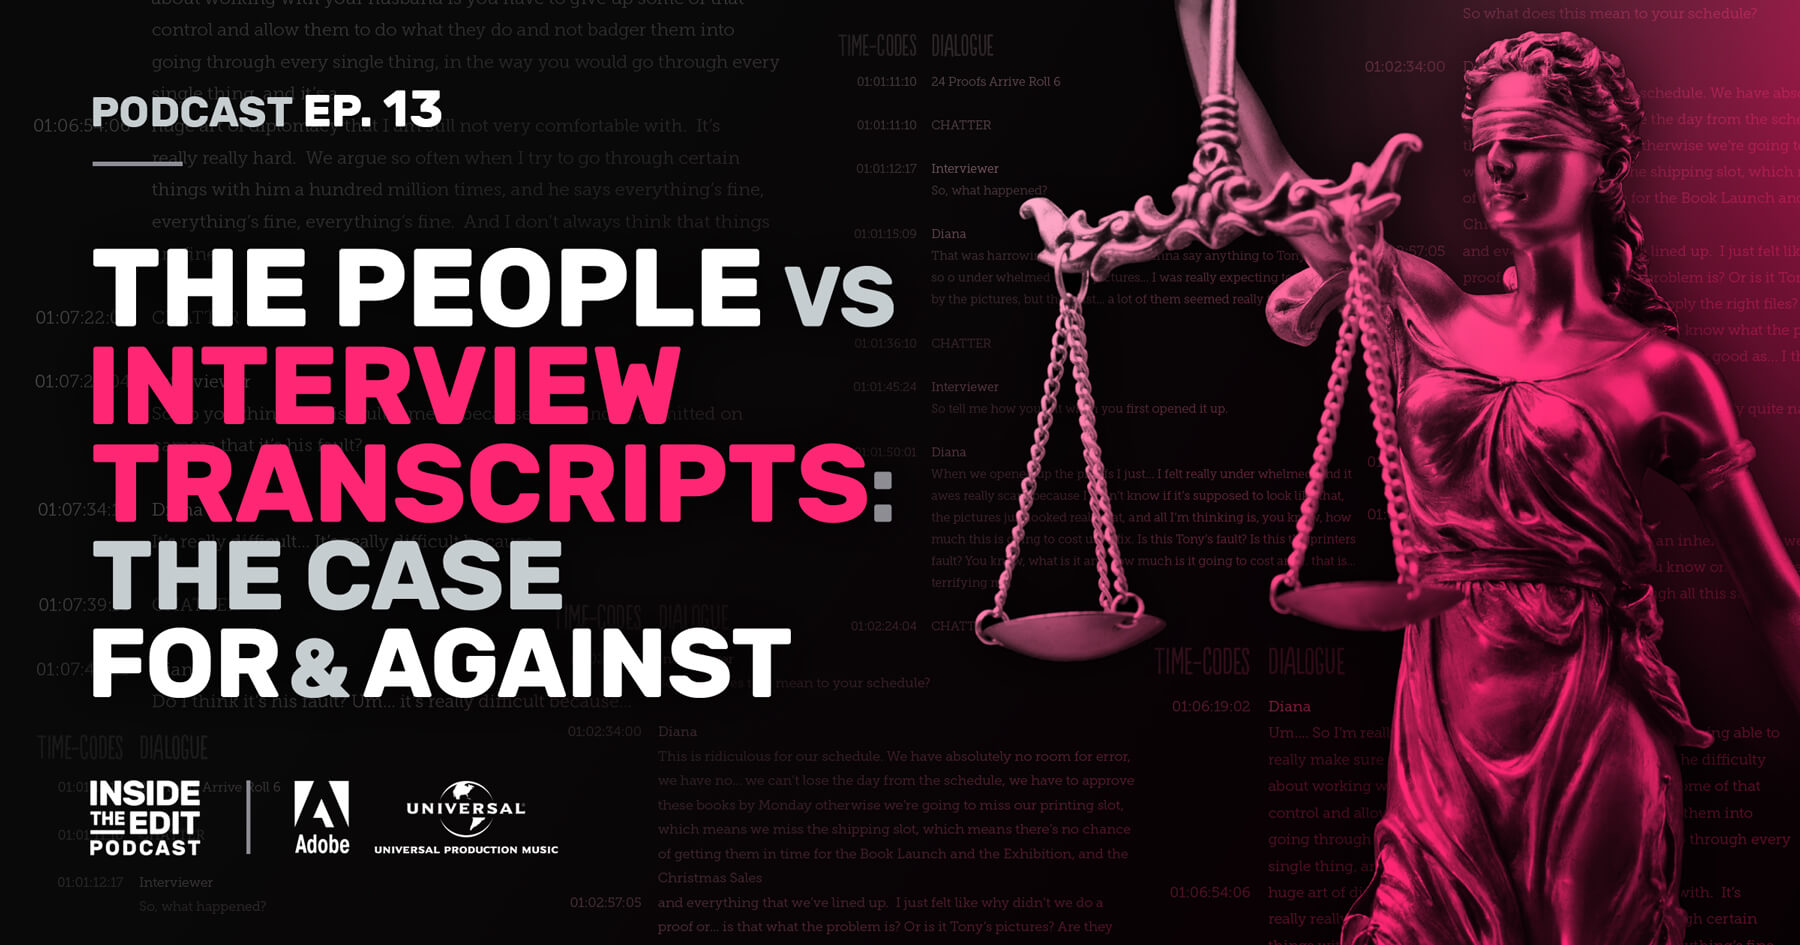 The People vs Interview Transcripts: The Case For & Against